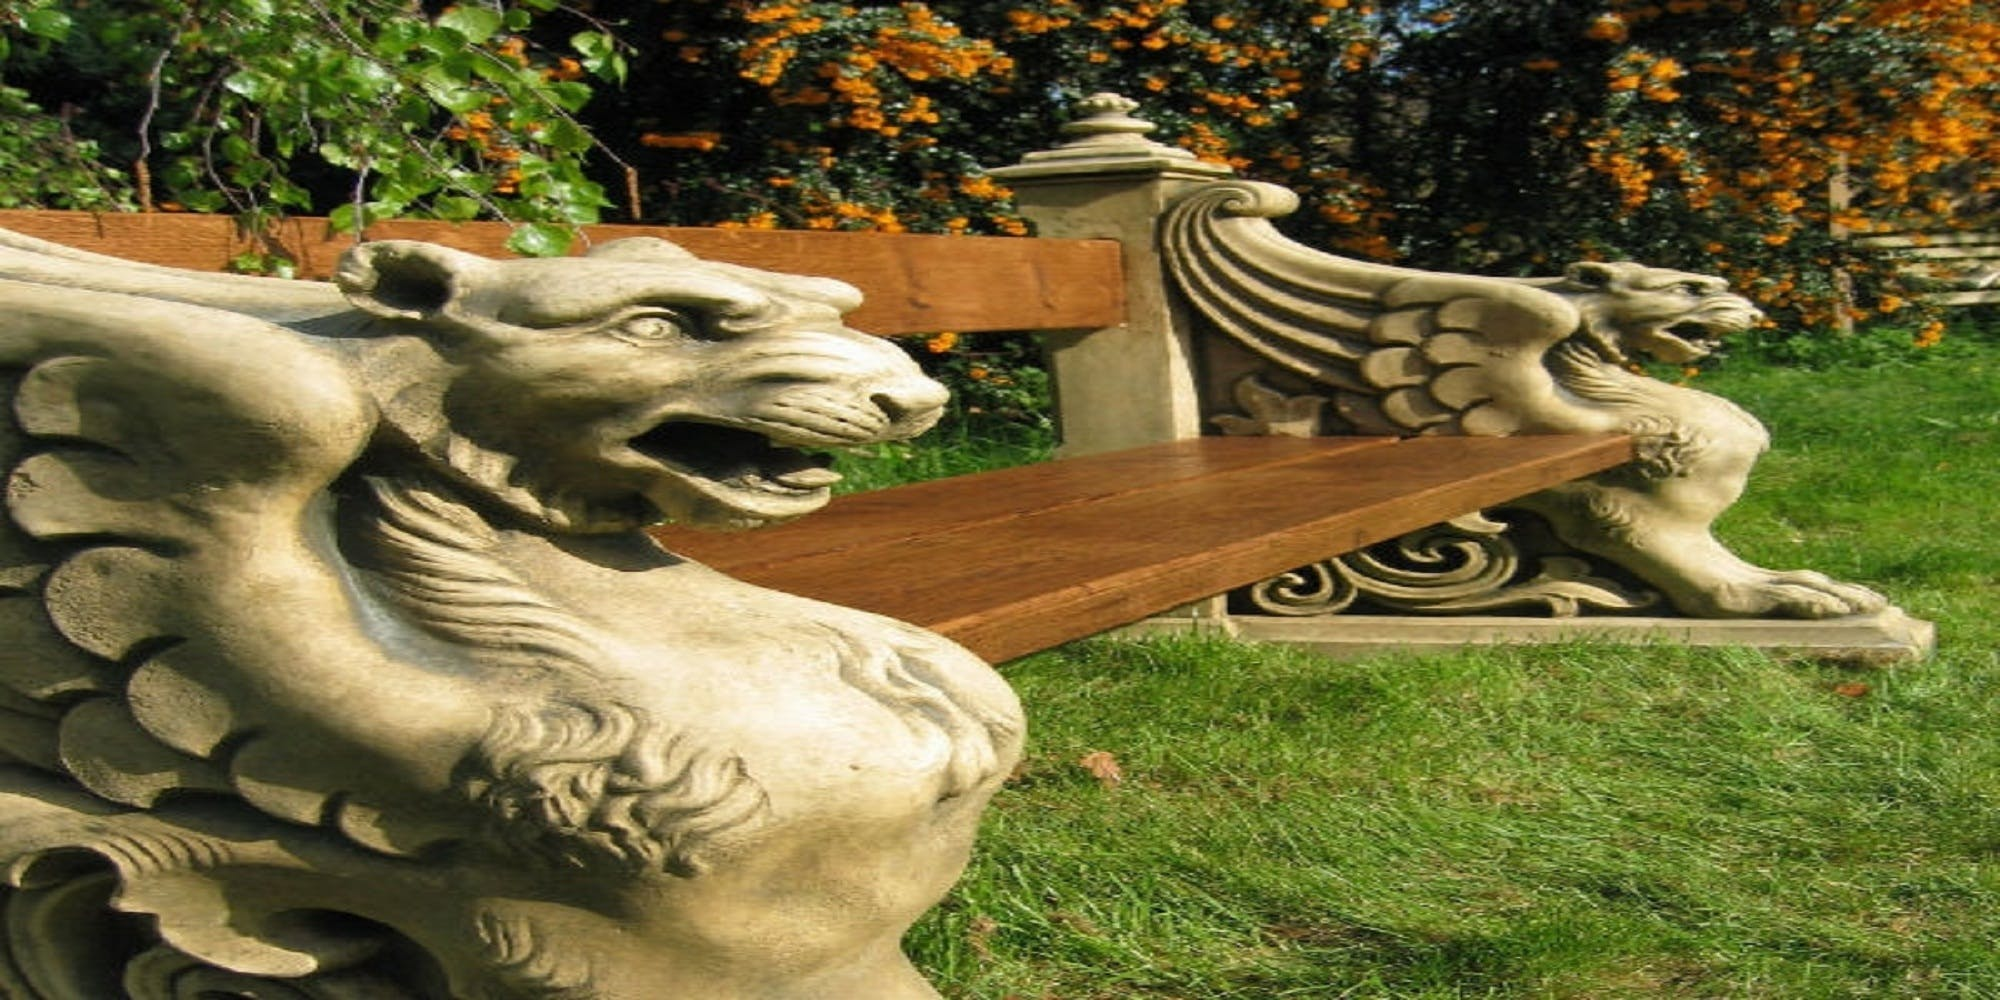 Free stock photo of Antique Stone Winged Lion Garden Park Bench